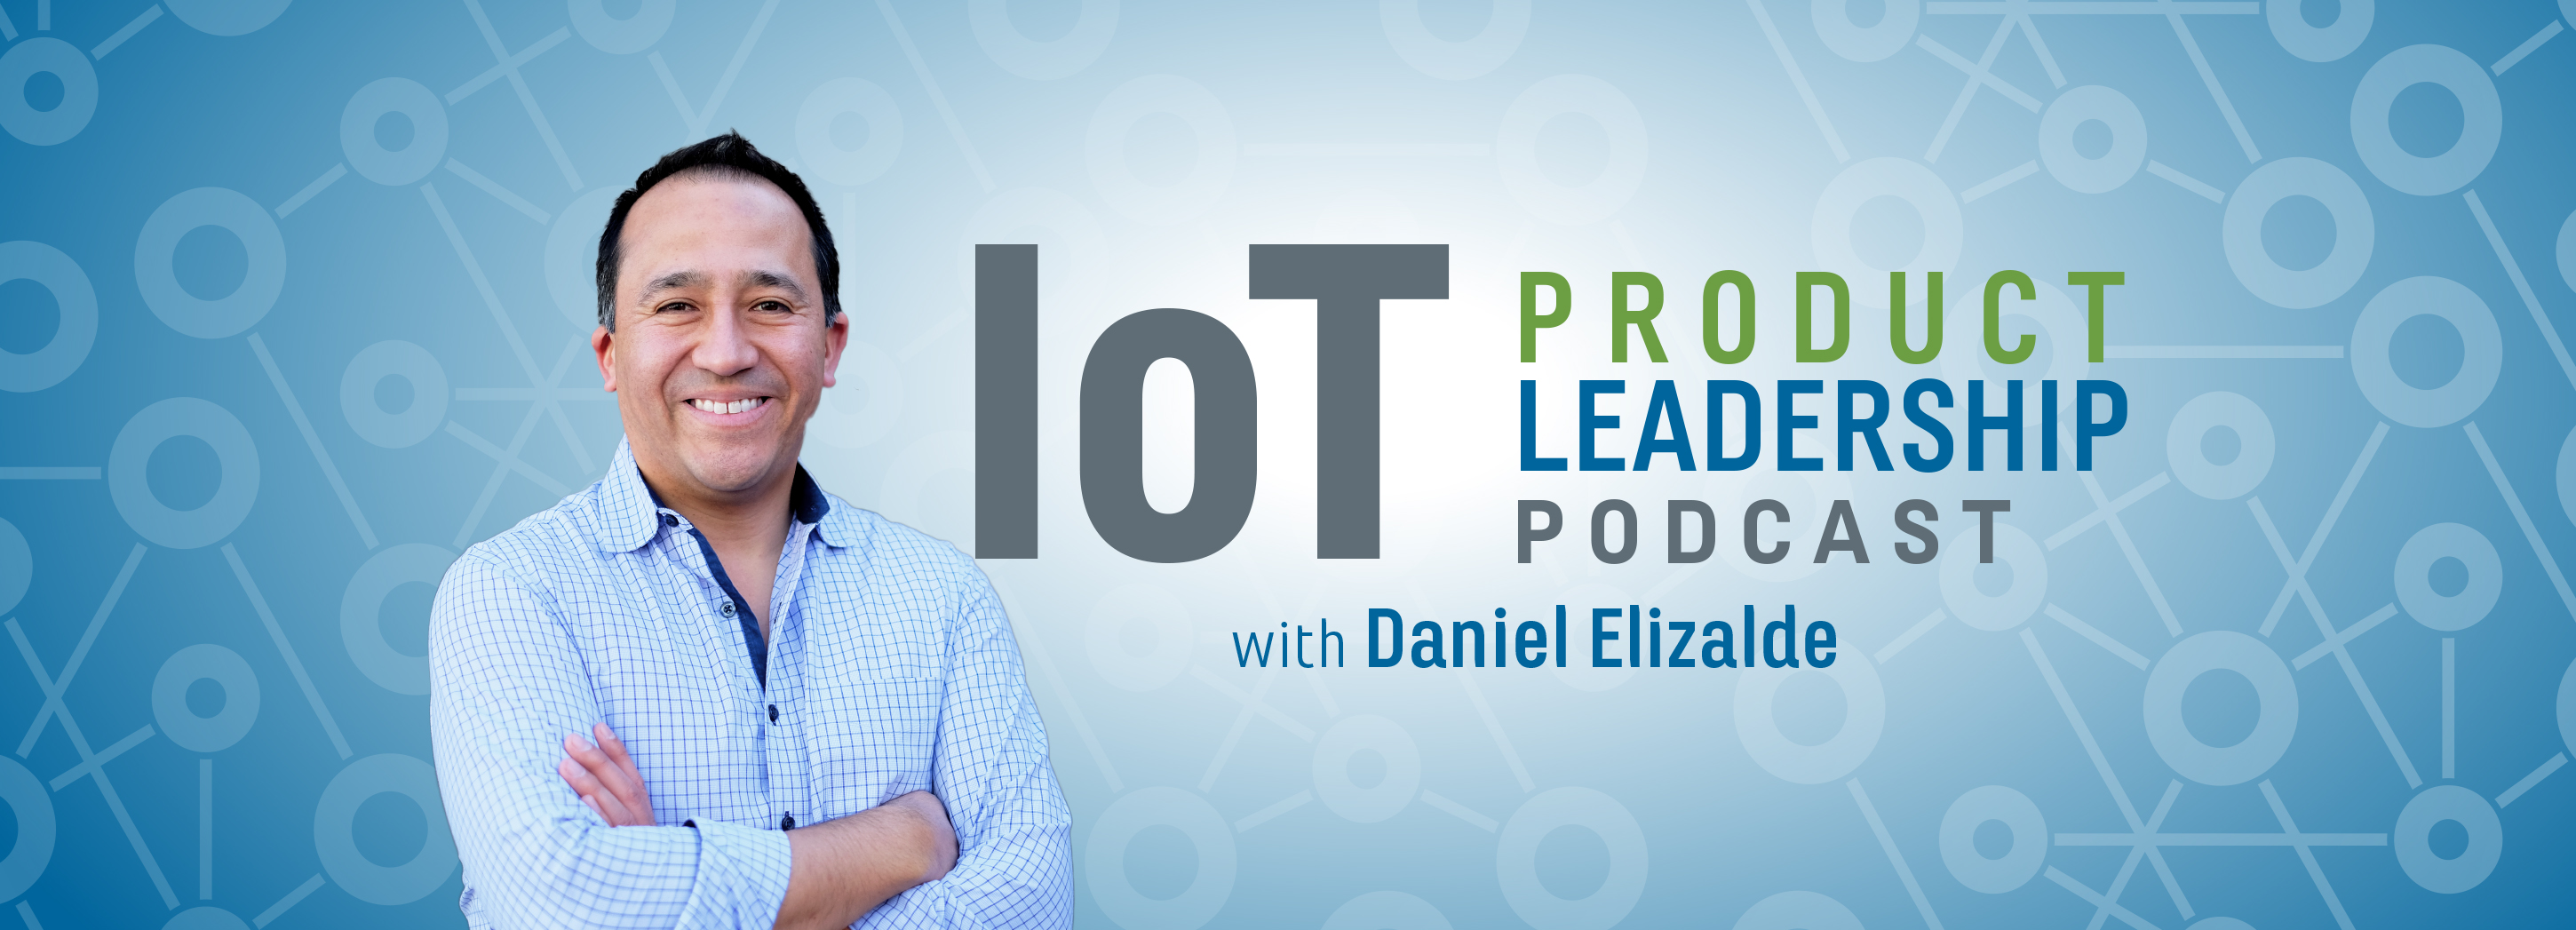 IoT podcast by Daniel Elizalde